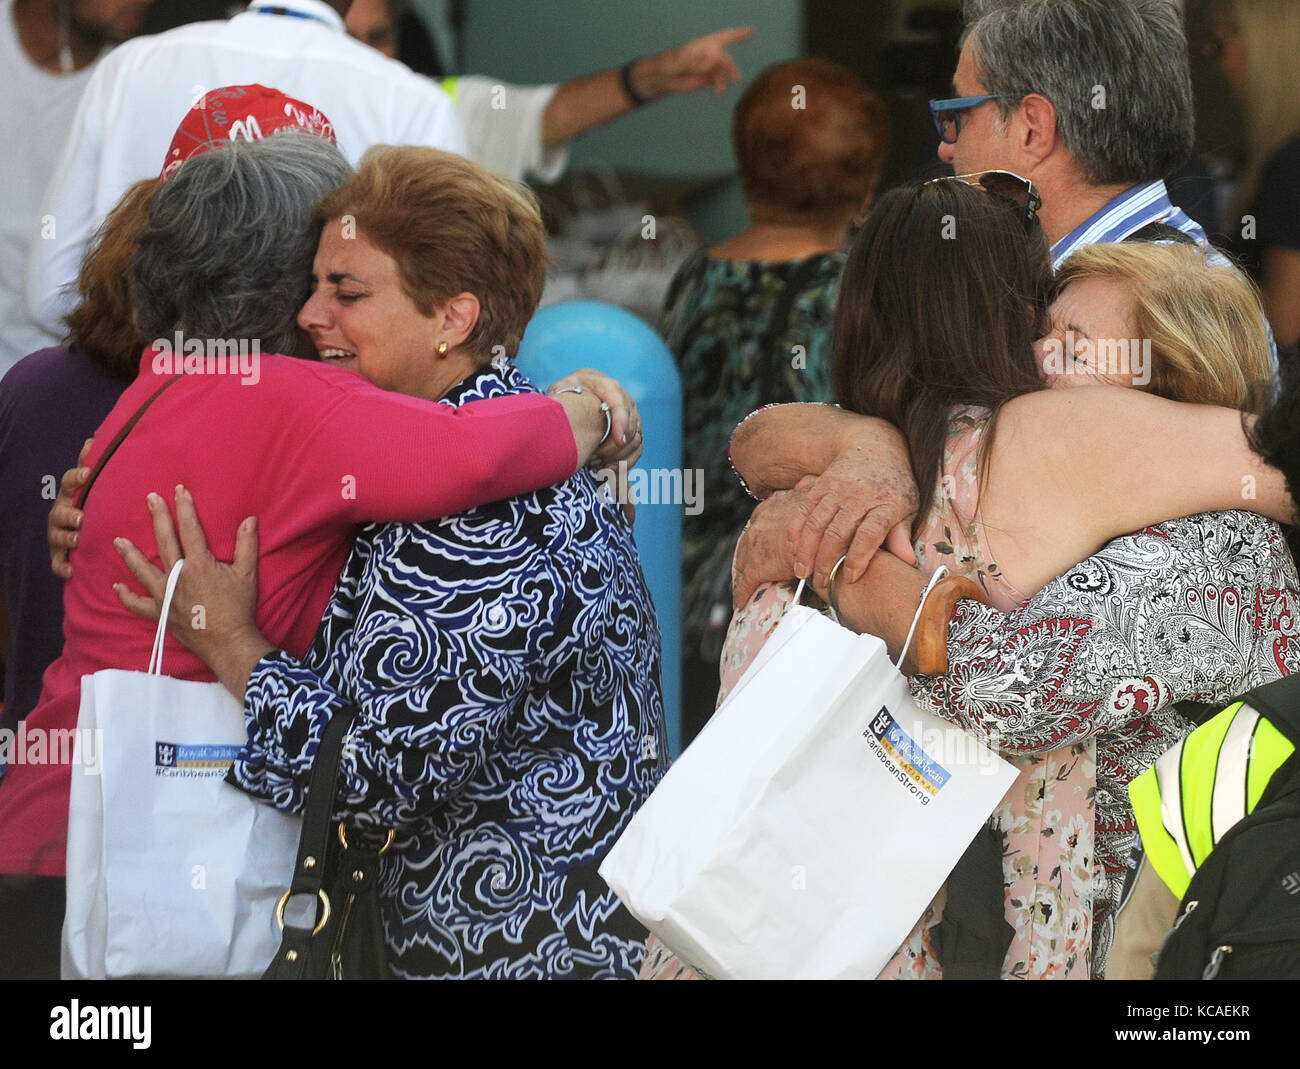 Fort Lauderdale, Florida, USA. 03rd Oct, 2017. Victims of Hurricane Maria embrace with family members at Port Everglades - Stock Image